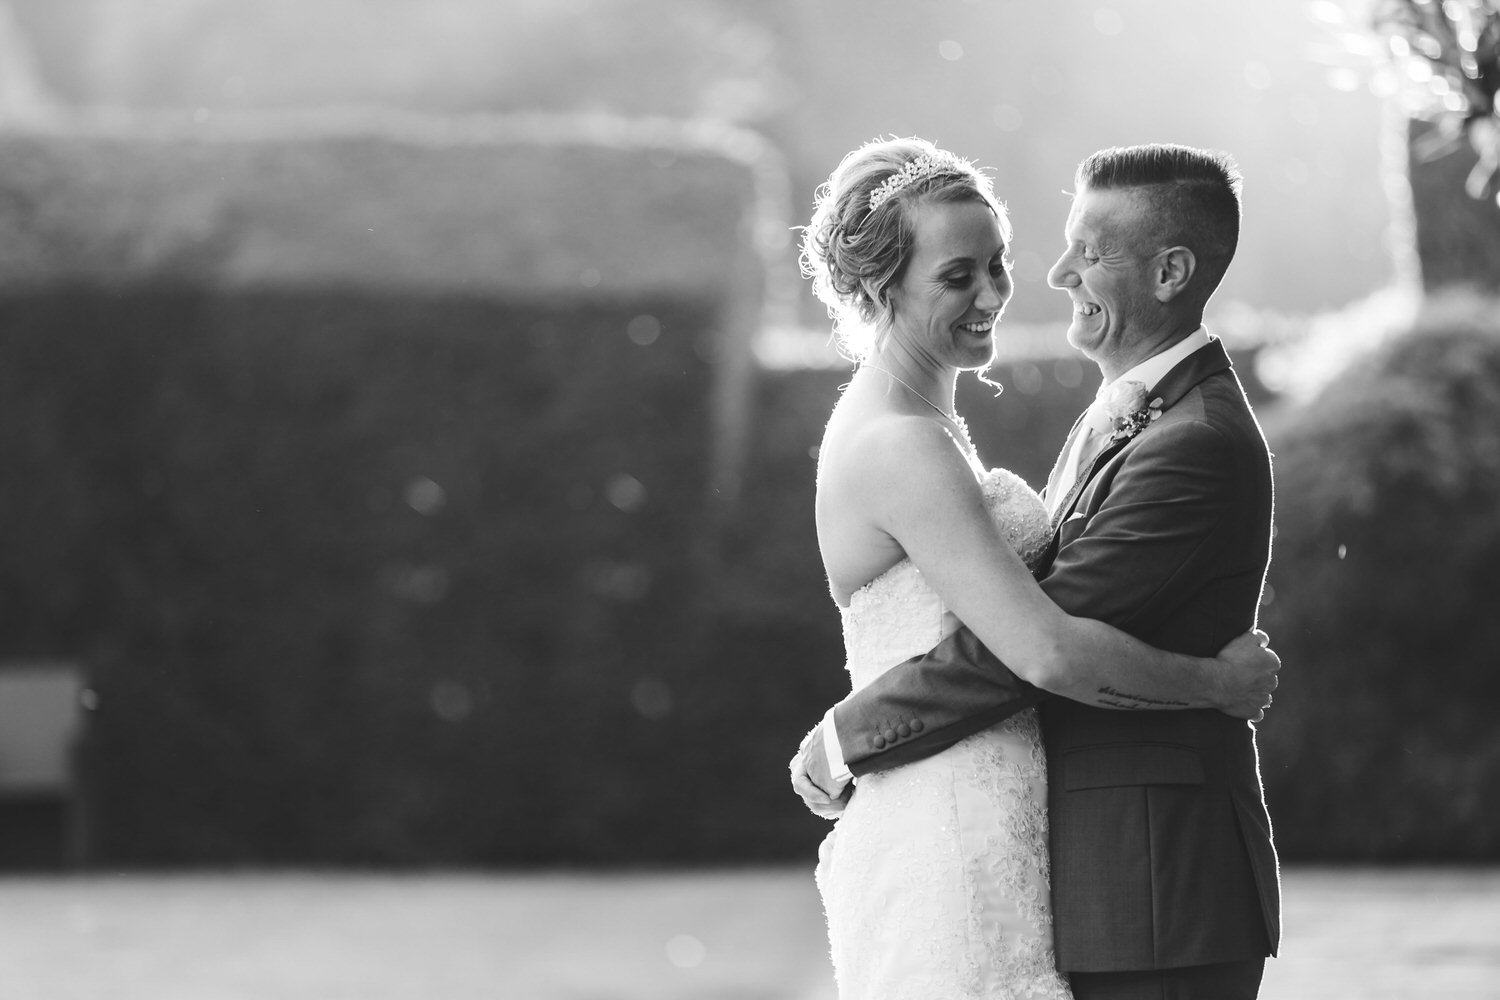 black and white evening wedding photos at miskin manor